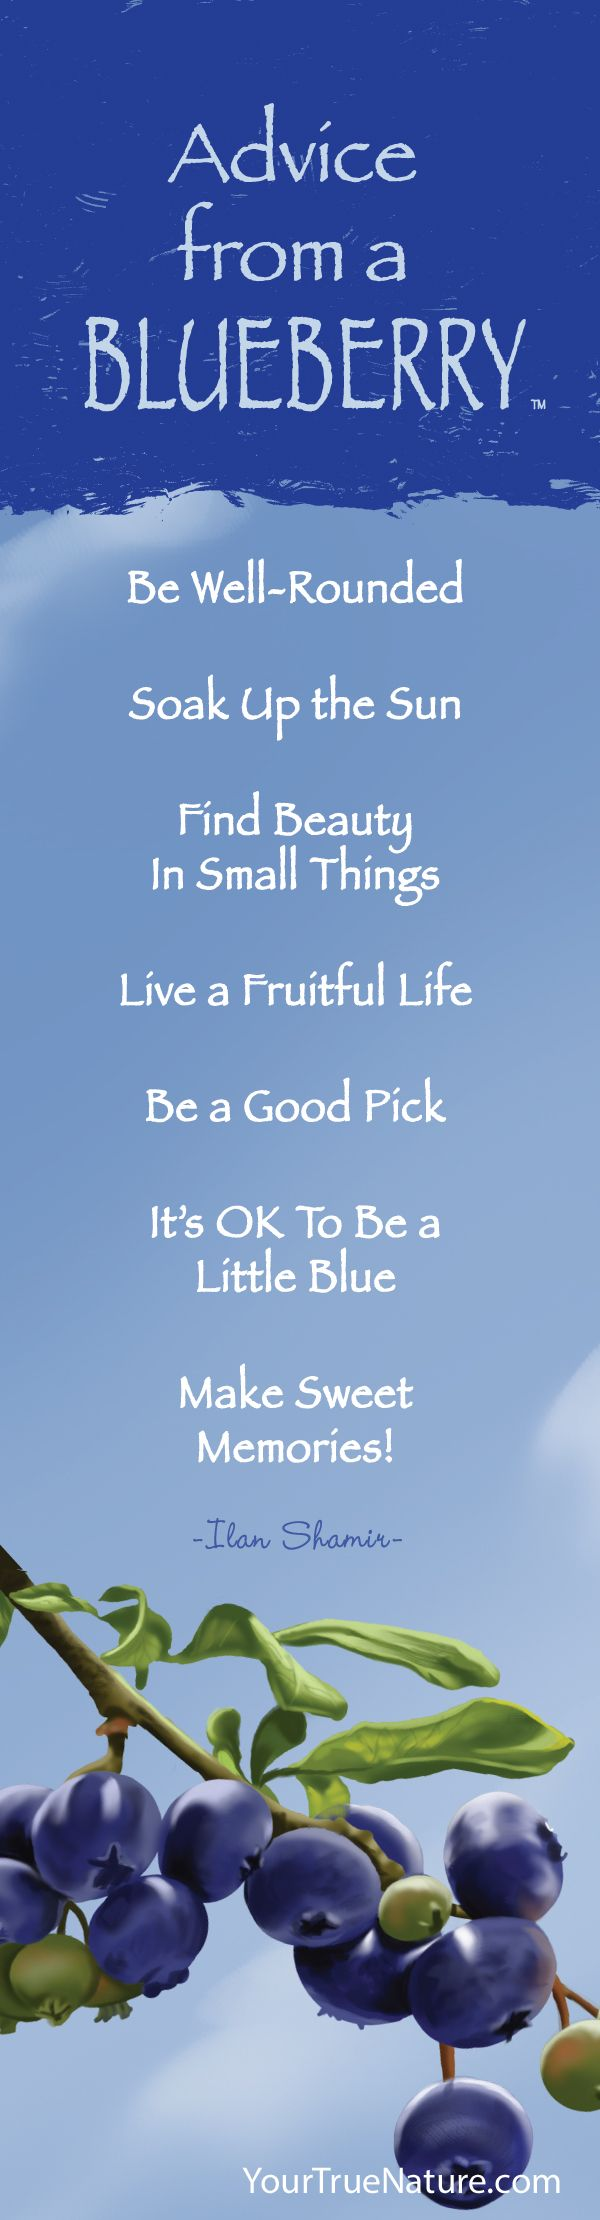 Advice from a Blueberry - Bookmark - Your True Nature